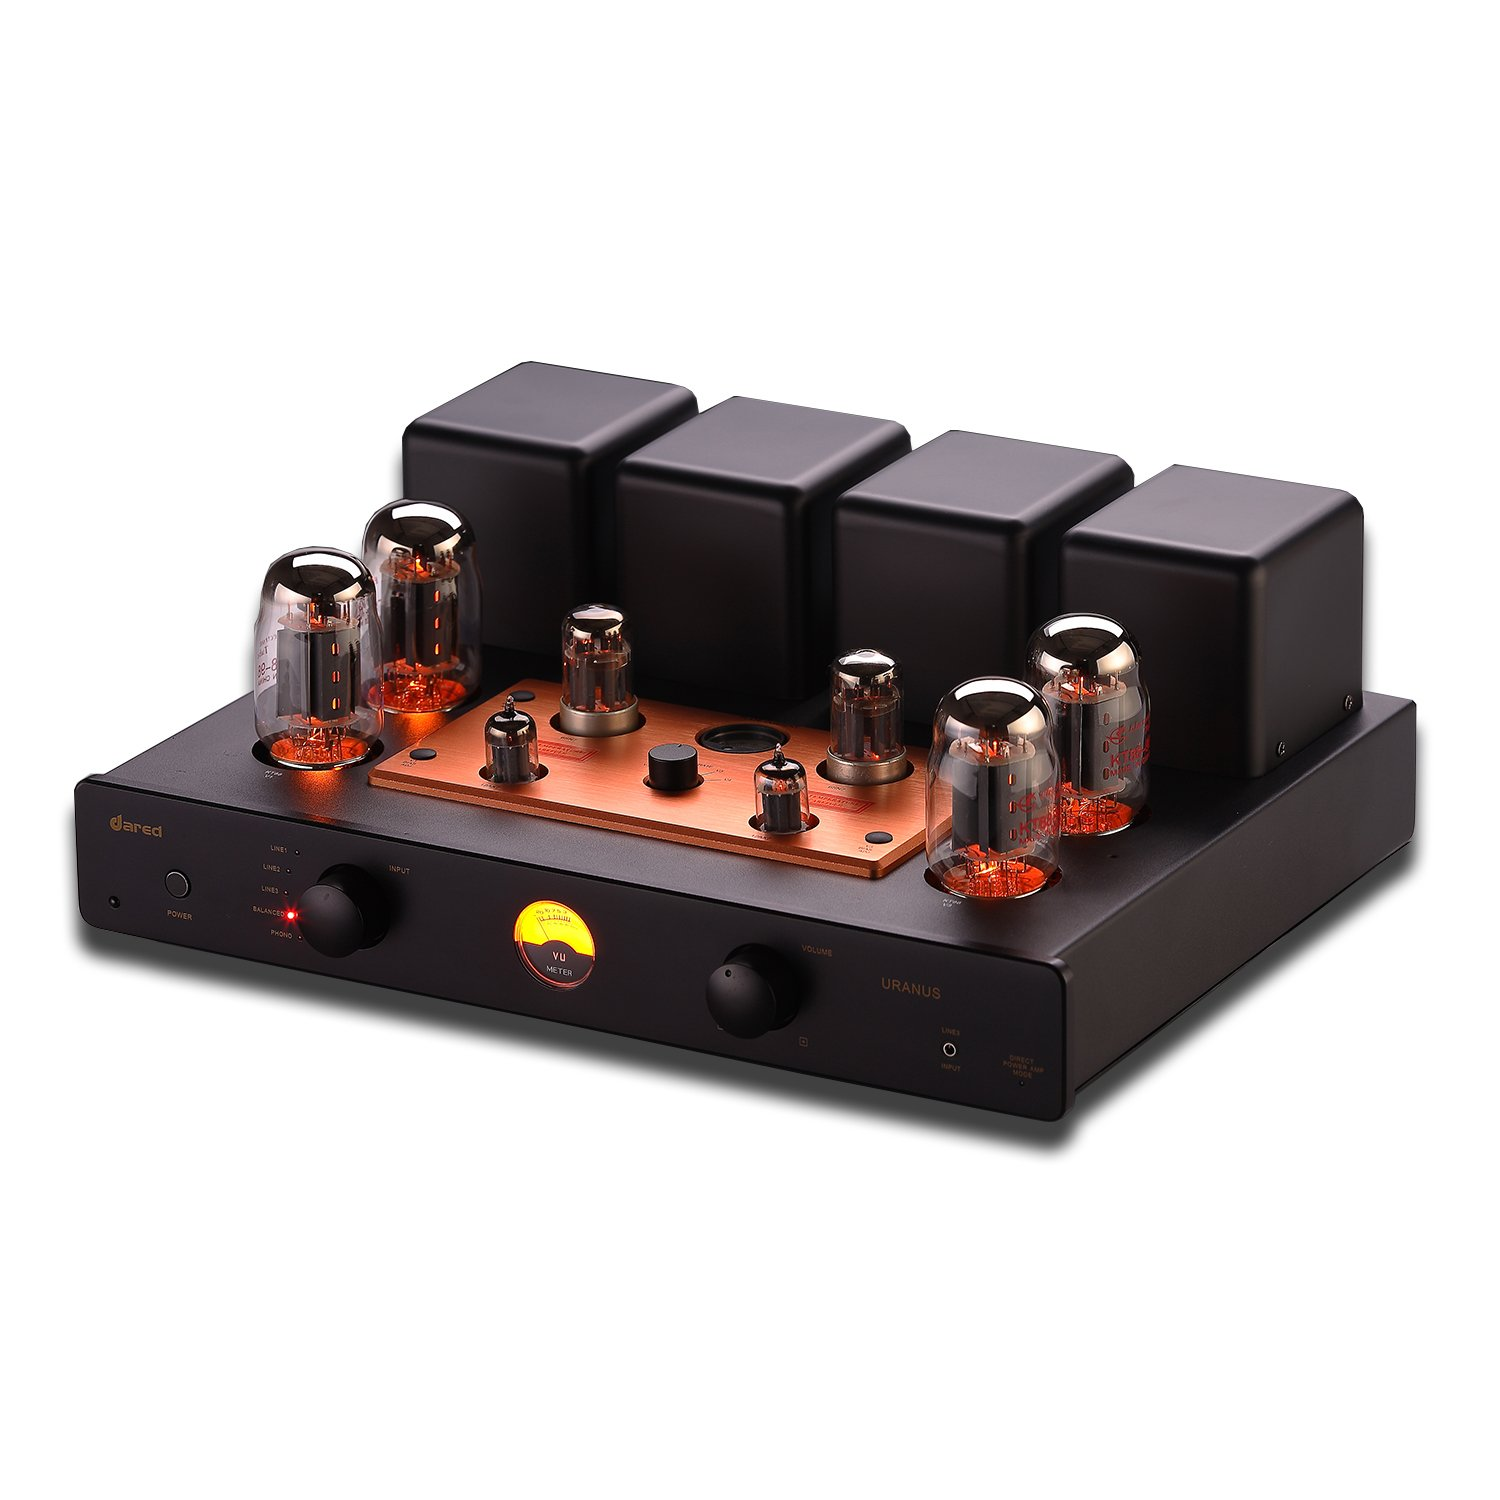 Original Dared URANUS HIFI Vacumn Tube KT88 Amplifier Hi-end Integrated with Remote Control support Direct Power AMP KT88*4, 12AX7*2, 6N8P*2 (KT120 tube optional) AMP05